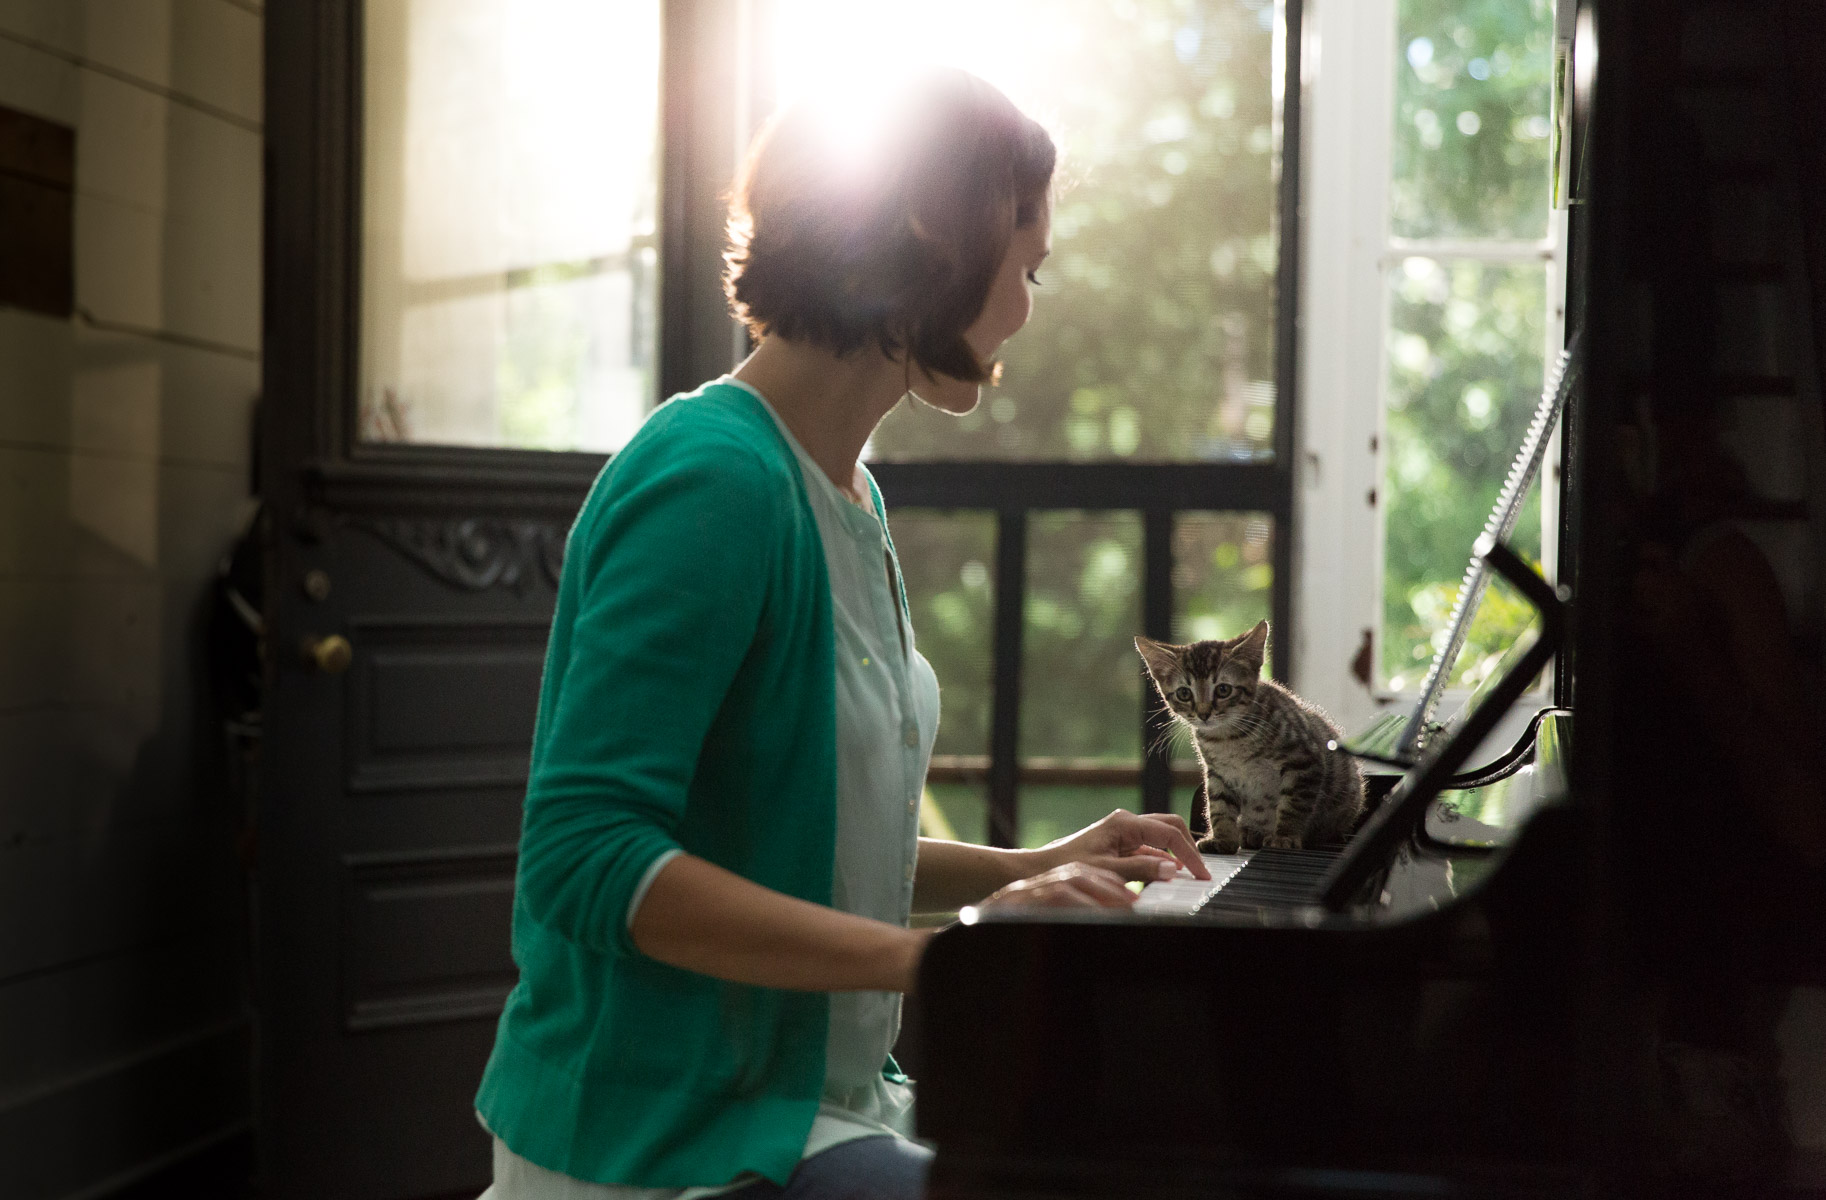 woman-playing-piano-with-cat-on-keyboards-pet-photography.jpg